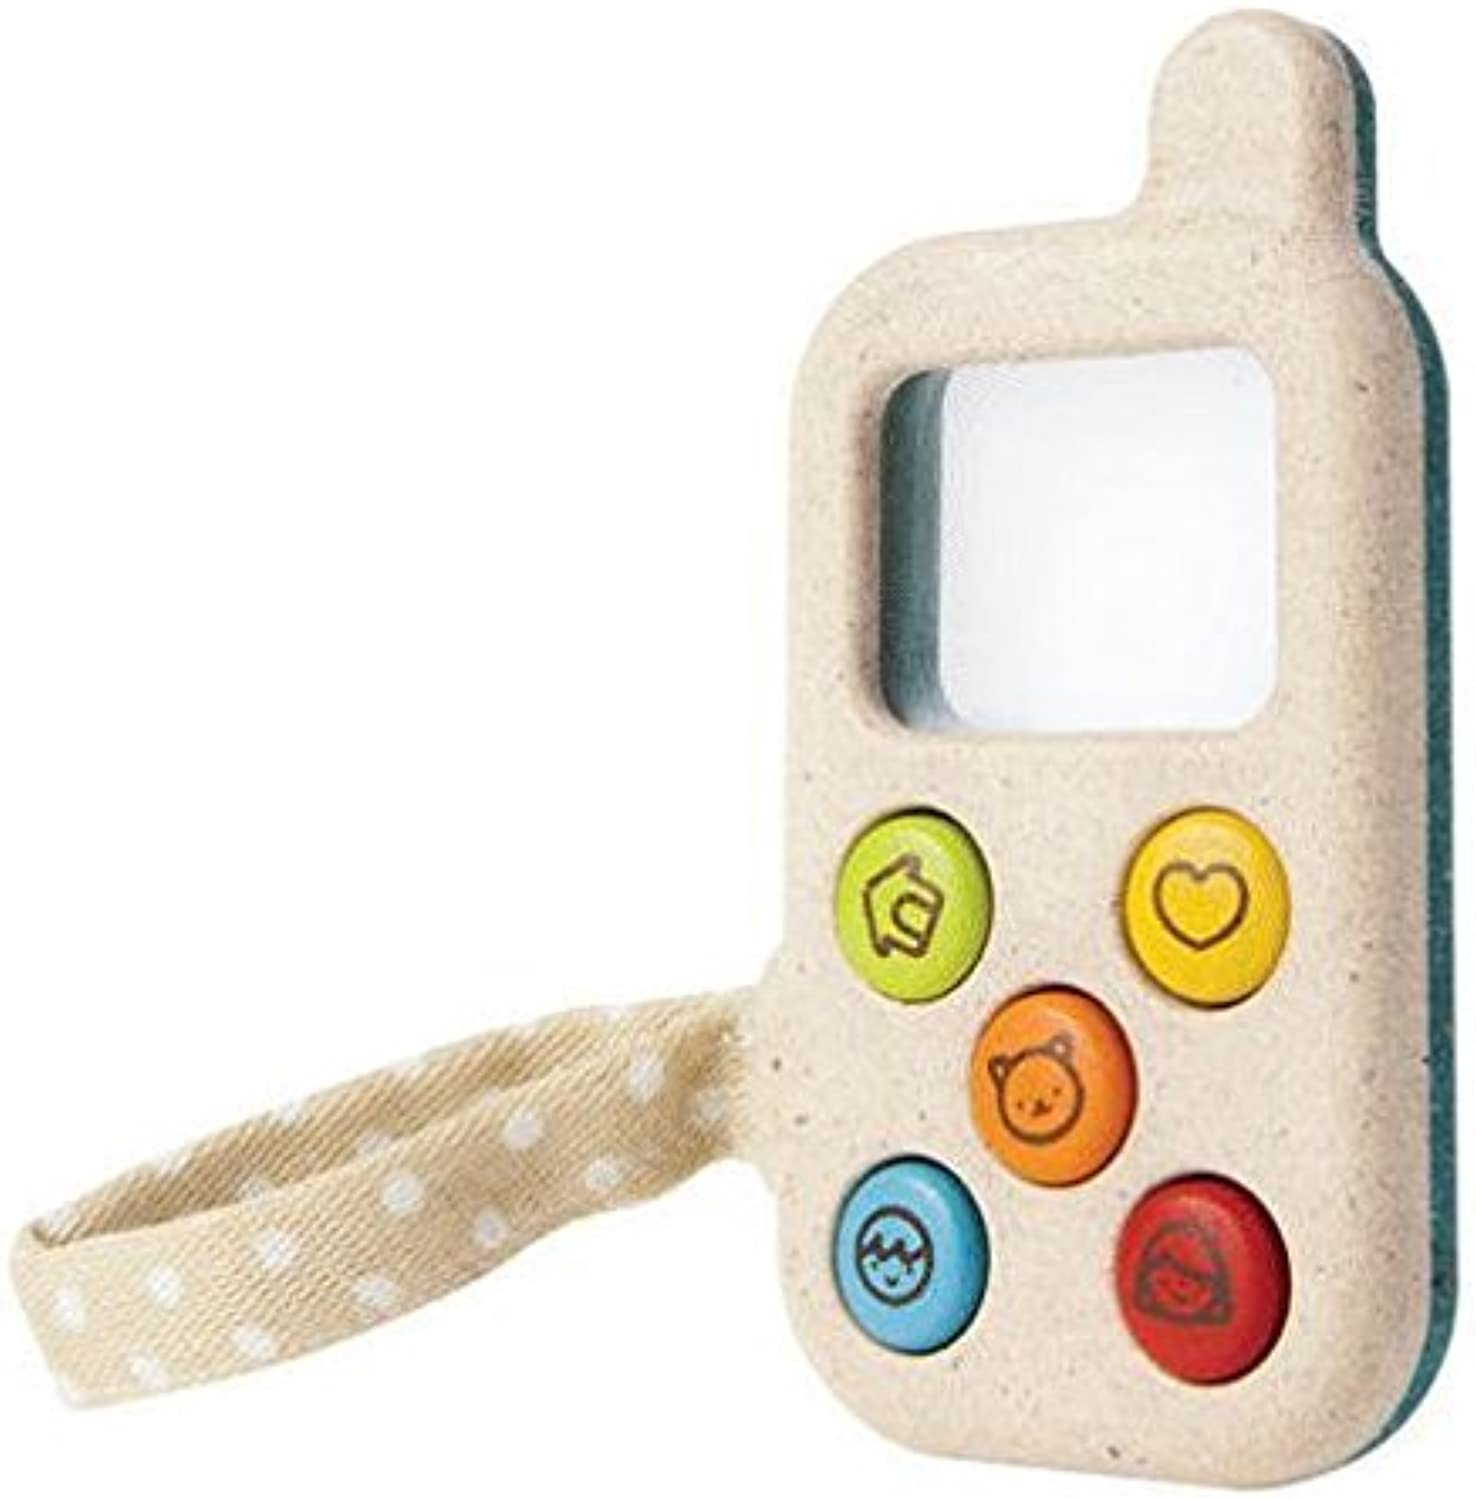 Plan Toys My First Phone by PlanToys